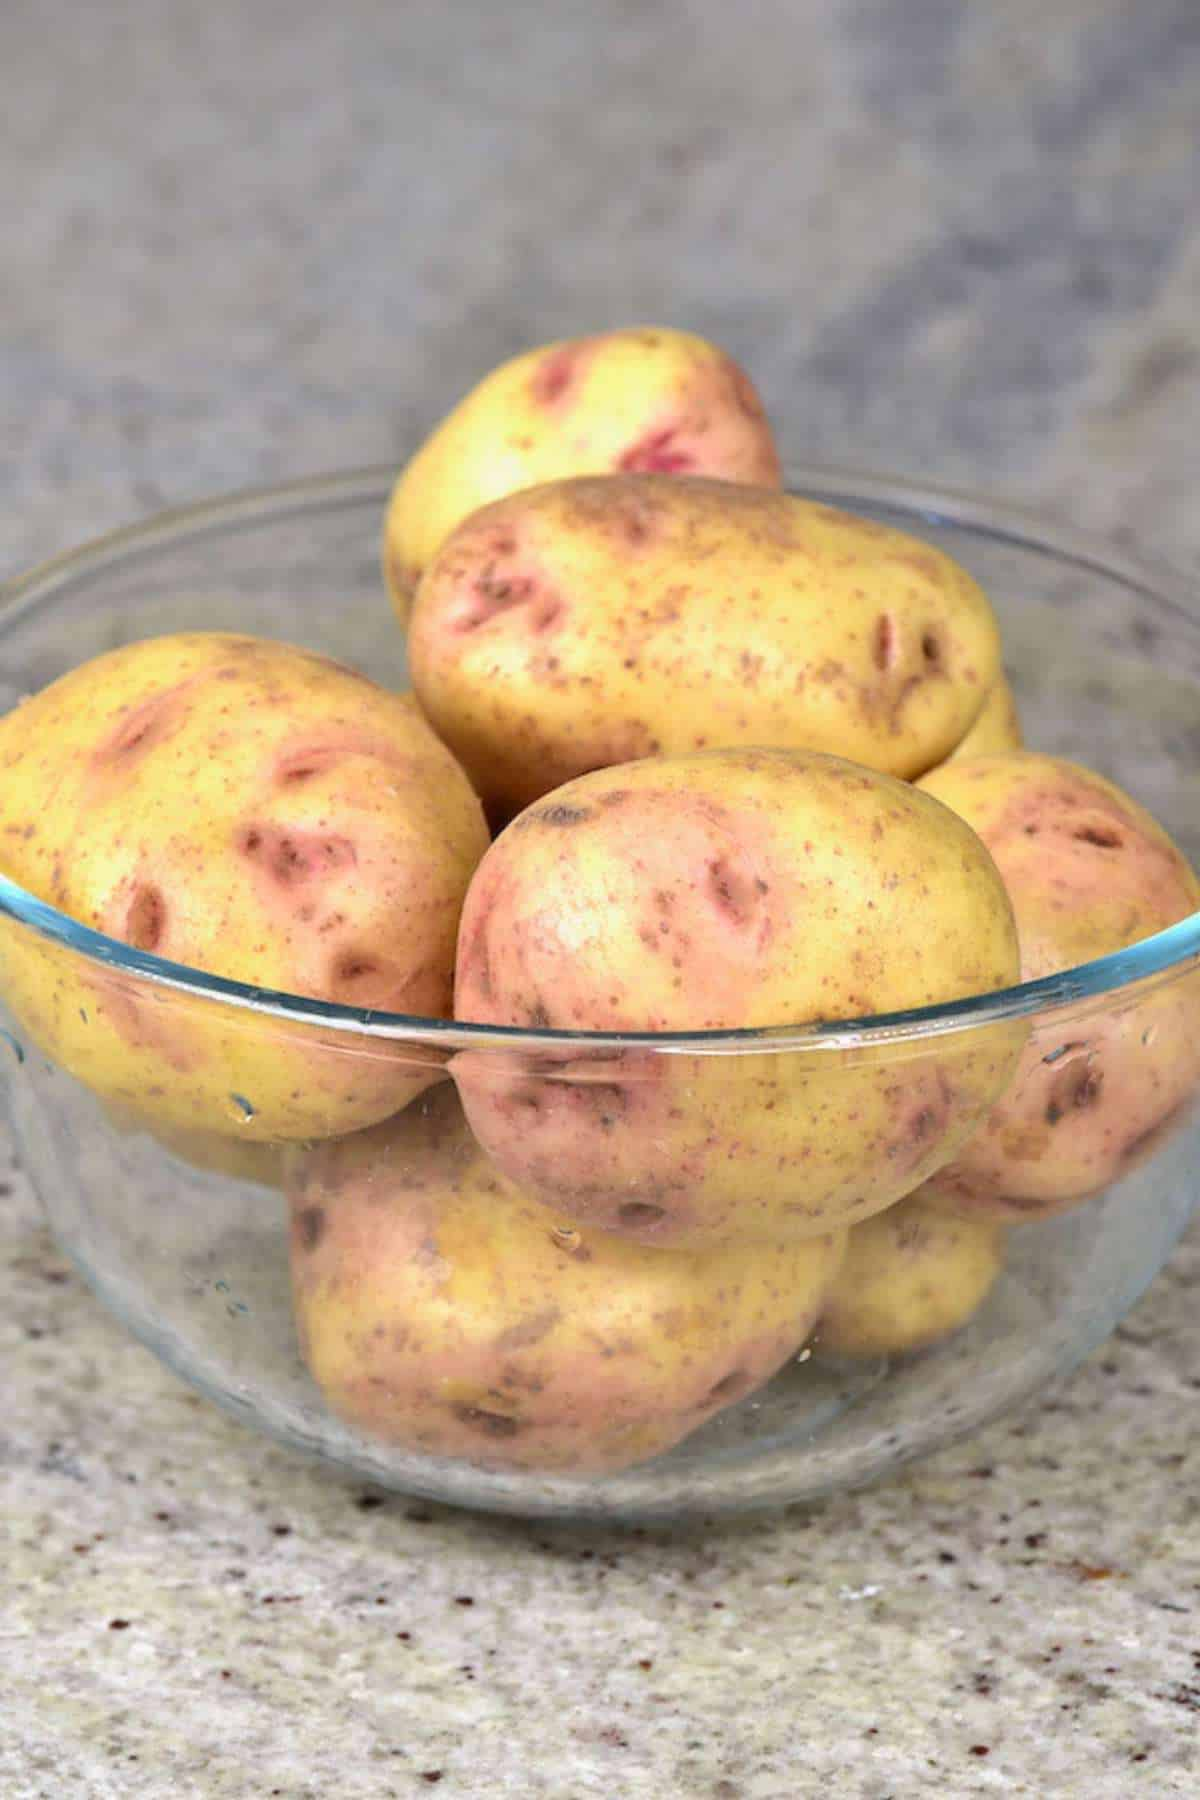 Potatoes in a bowl